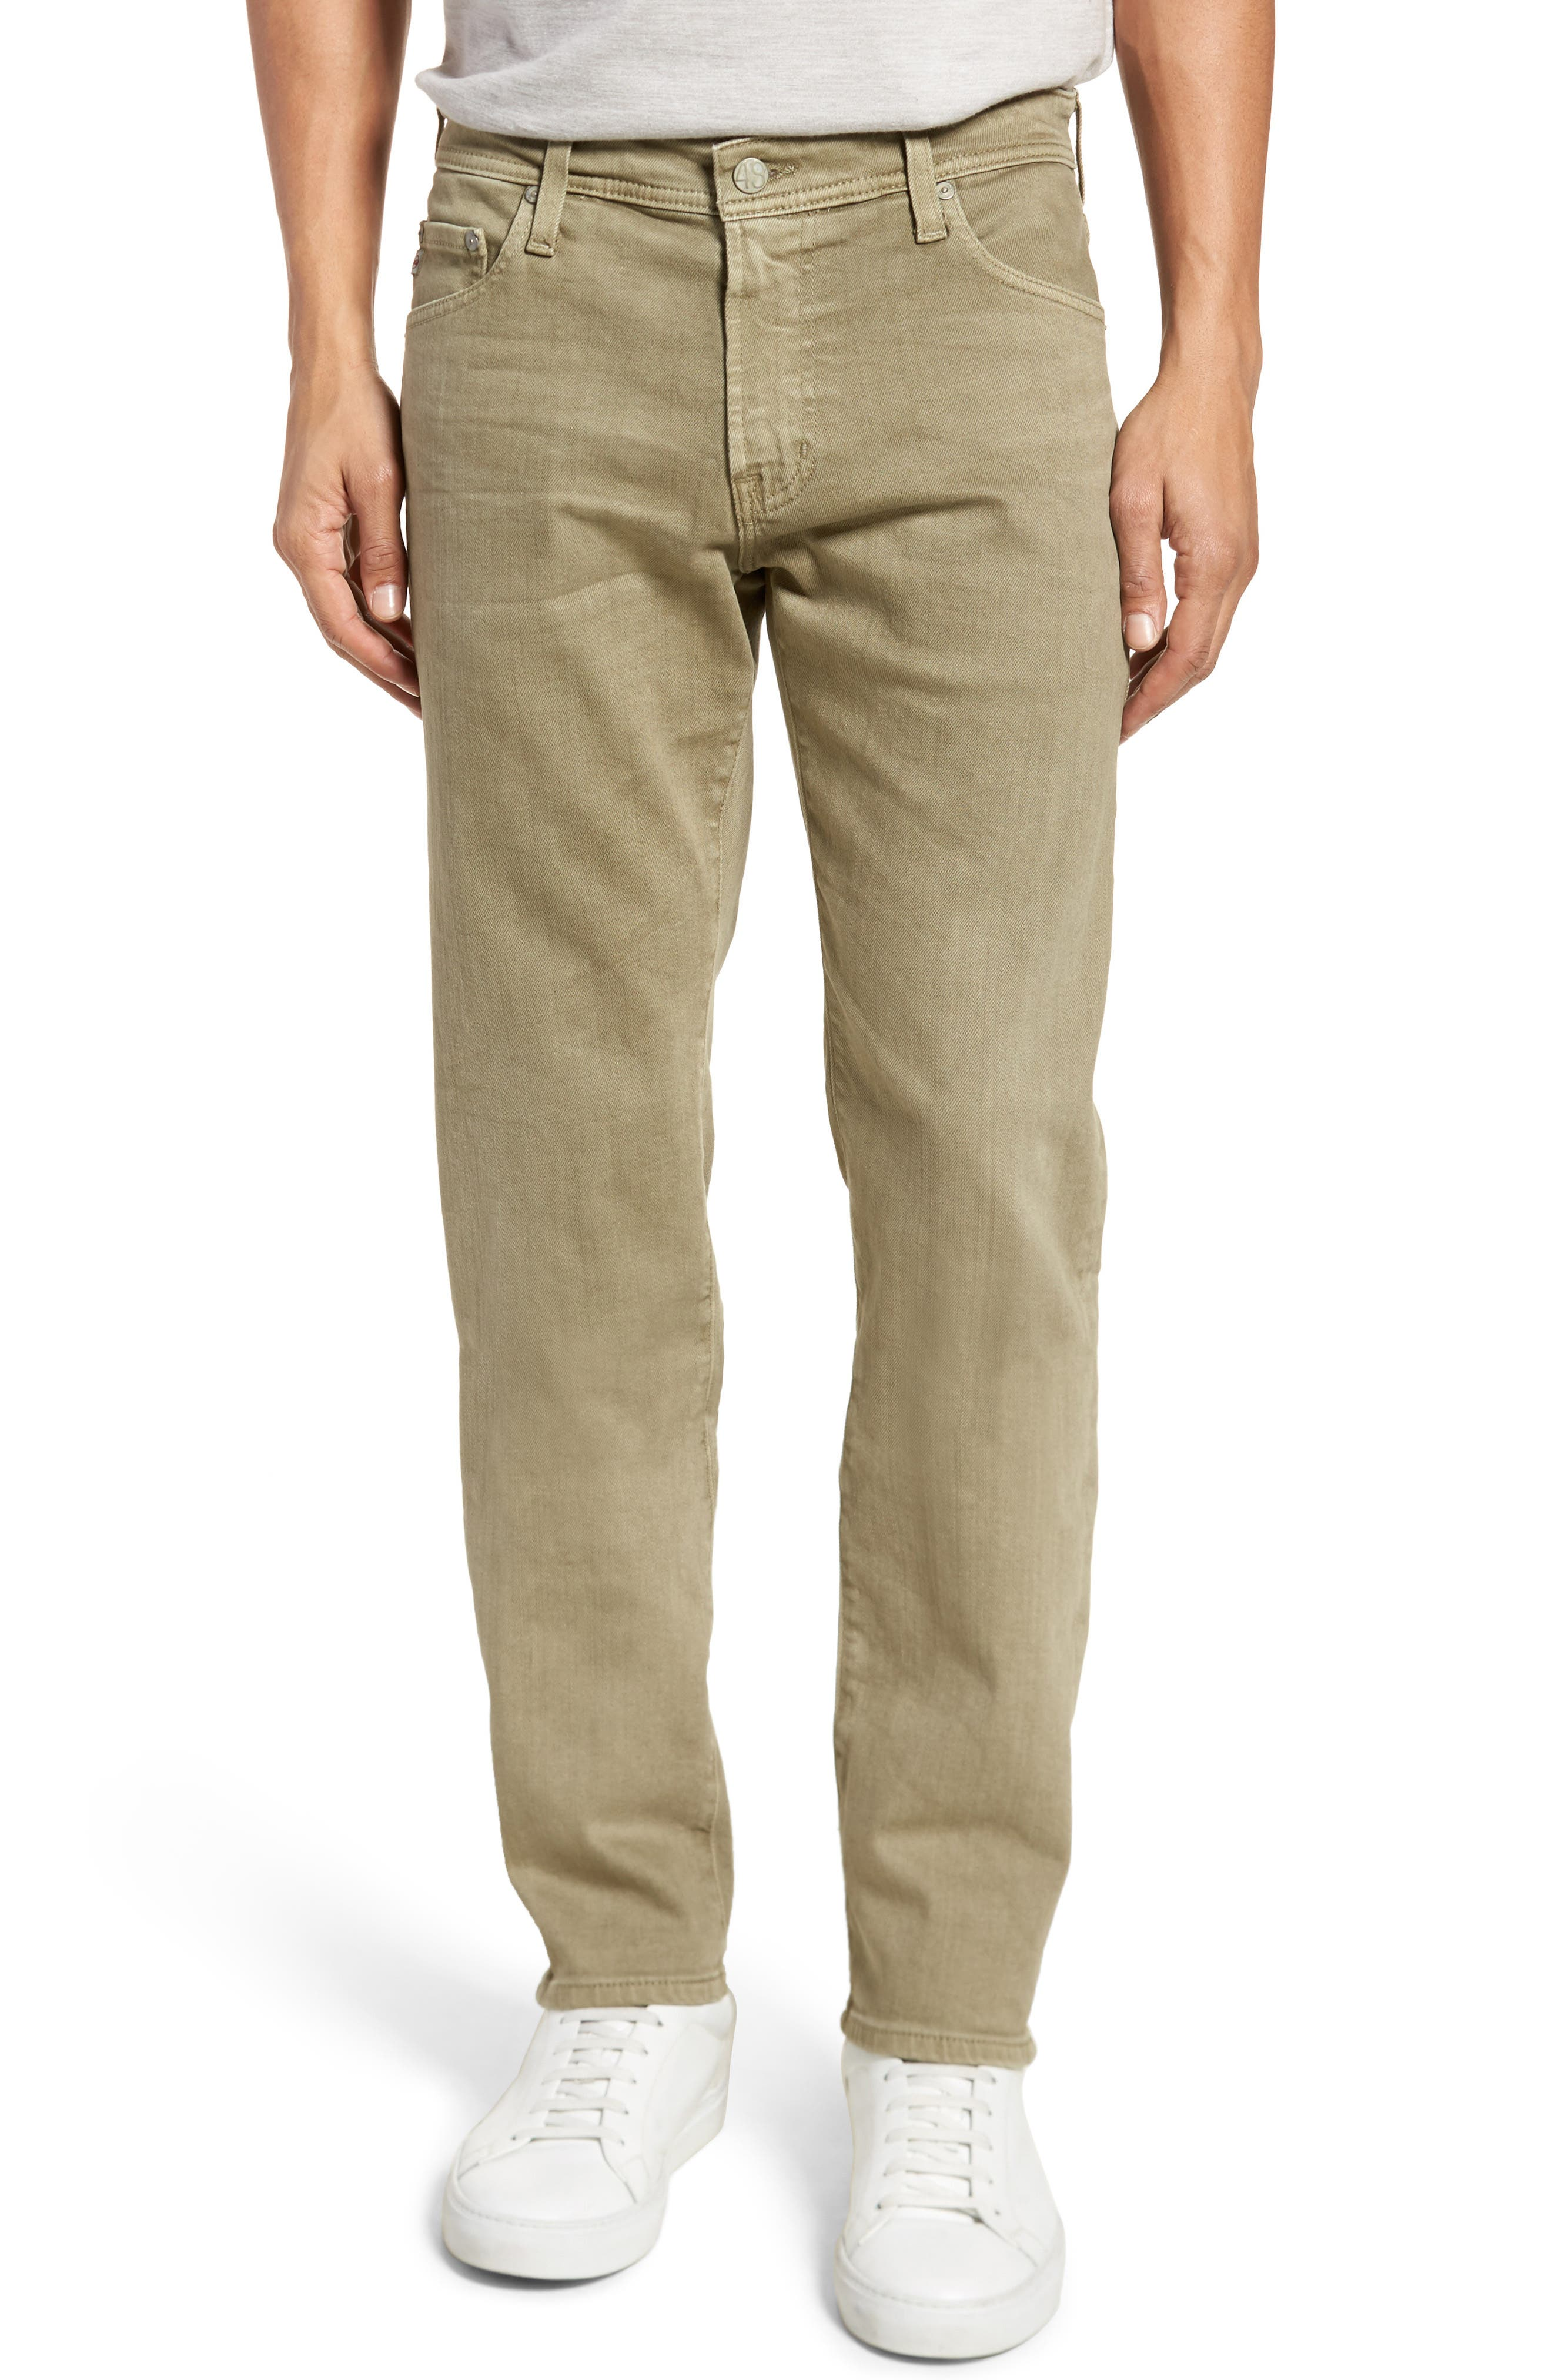 Tellis Slim Fit Jeans,                             Main thumbnail 1, color,                             7 Years Dry Cypress